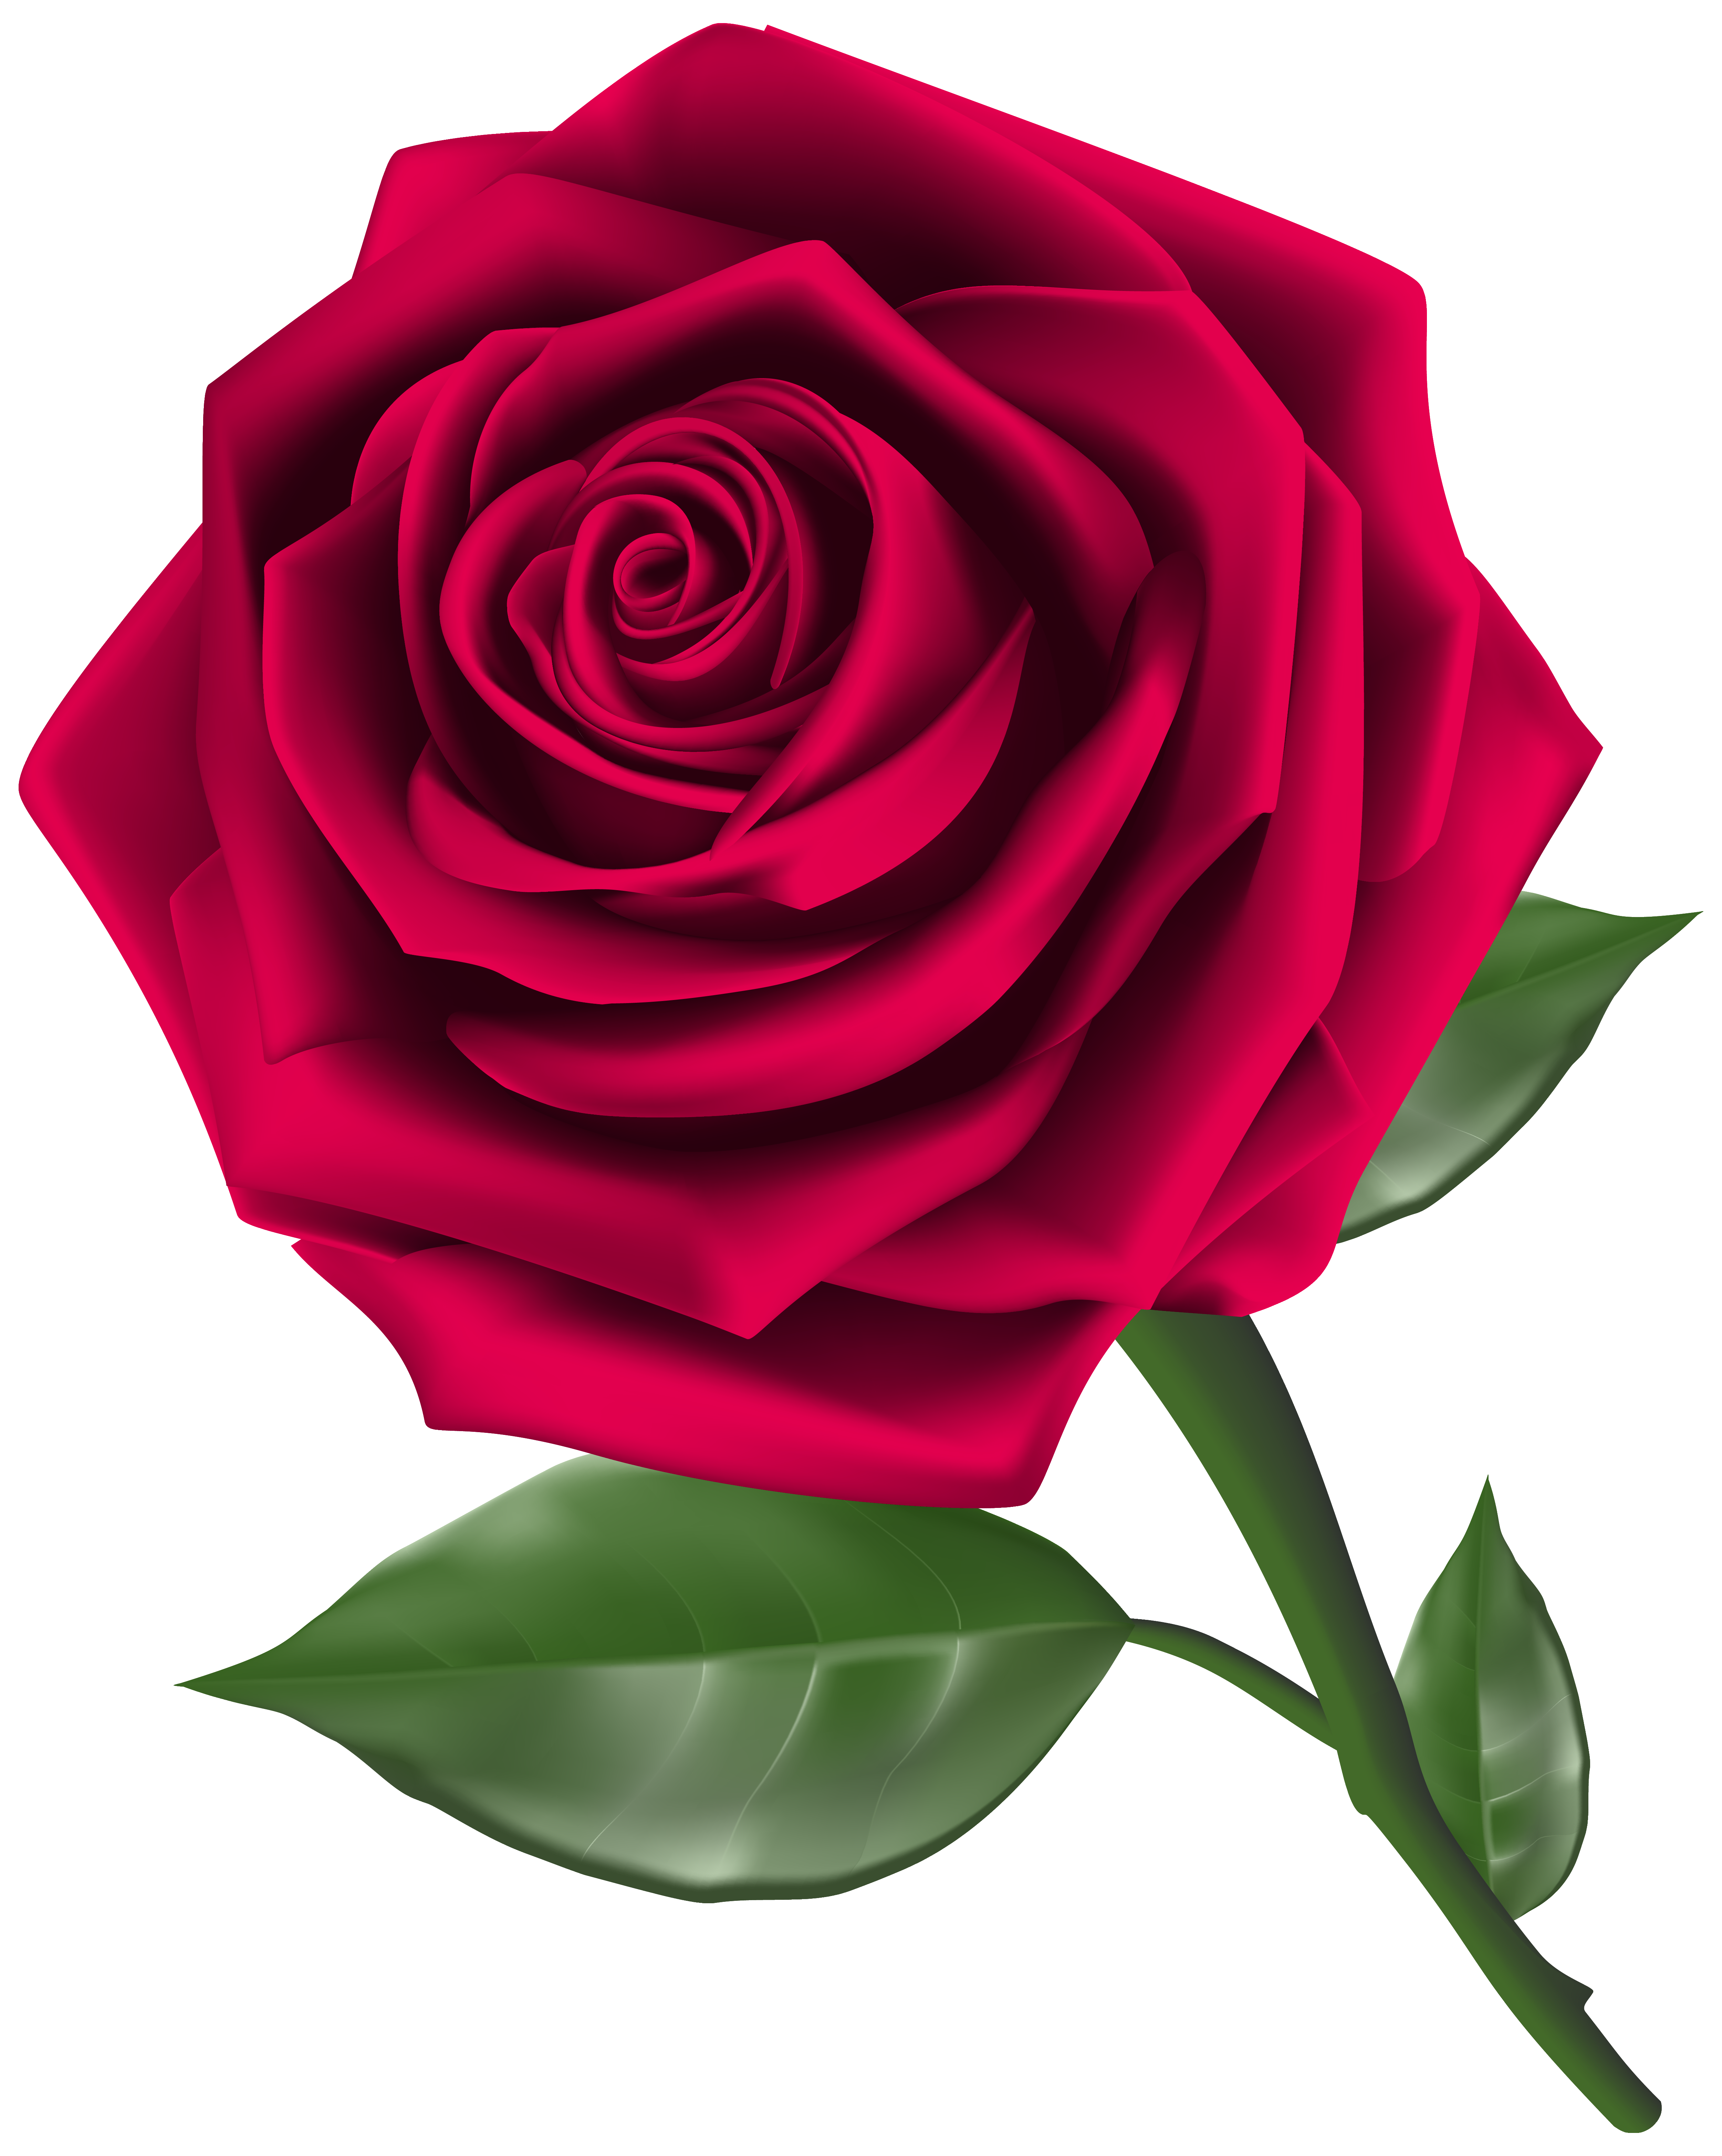 Rose clipart. Steam png image gallery